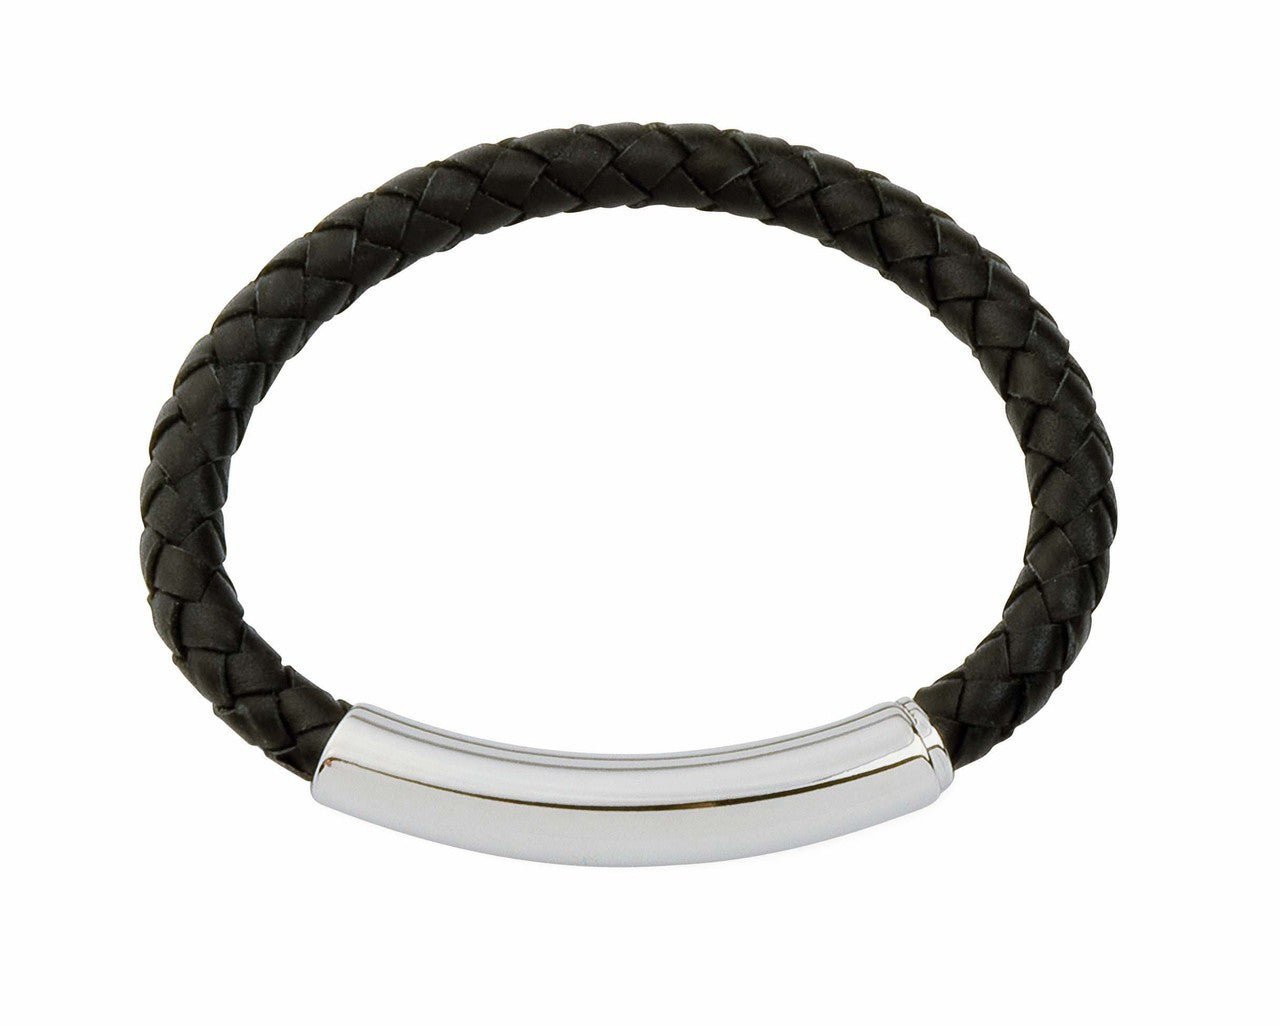 COB01 leather and steel adjustable bracelet